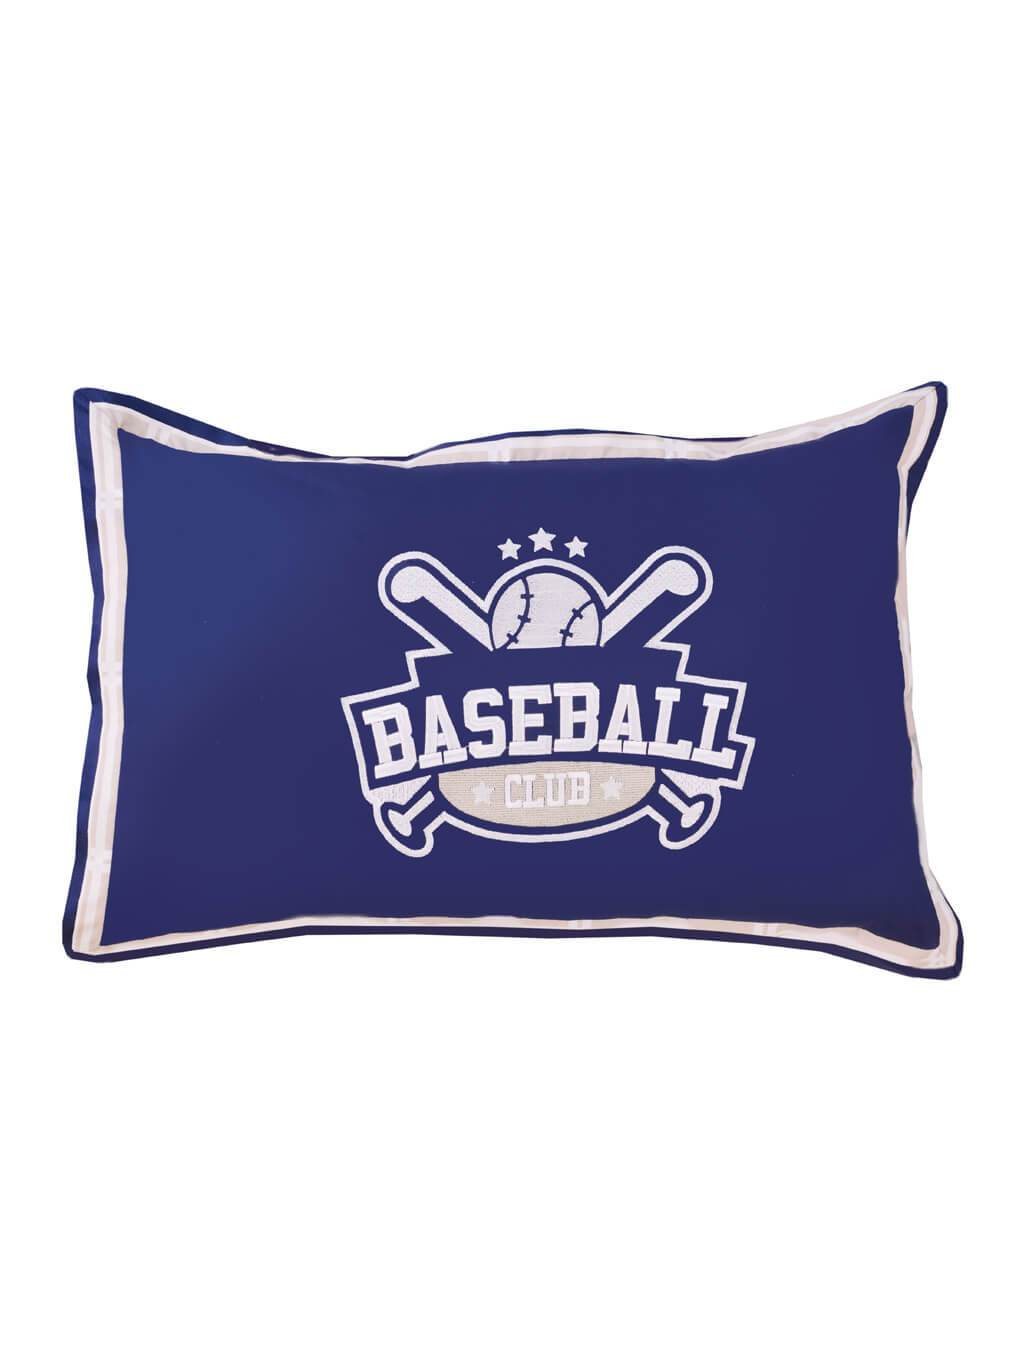 Baseball Club Teens & Kids Bedding HOMBEDIMP EXTRA PILLOW COVER